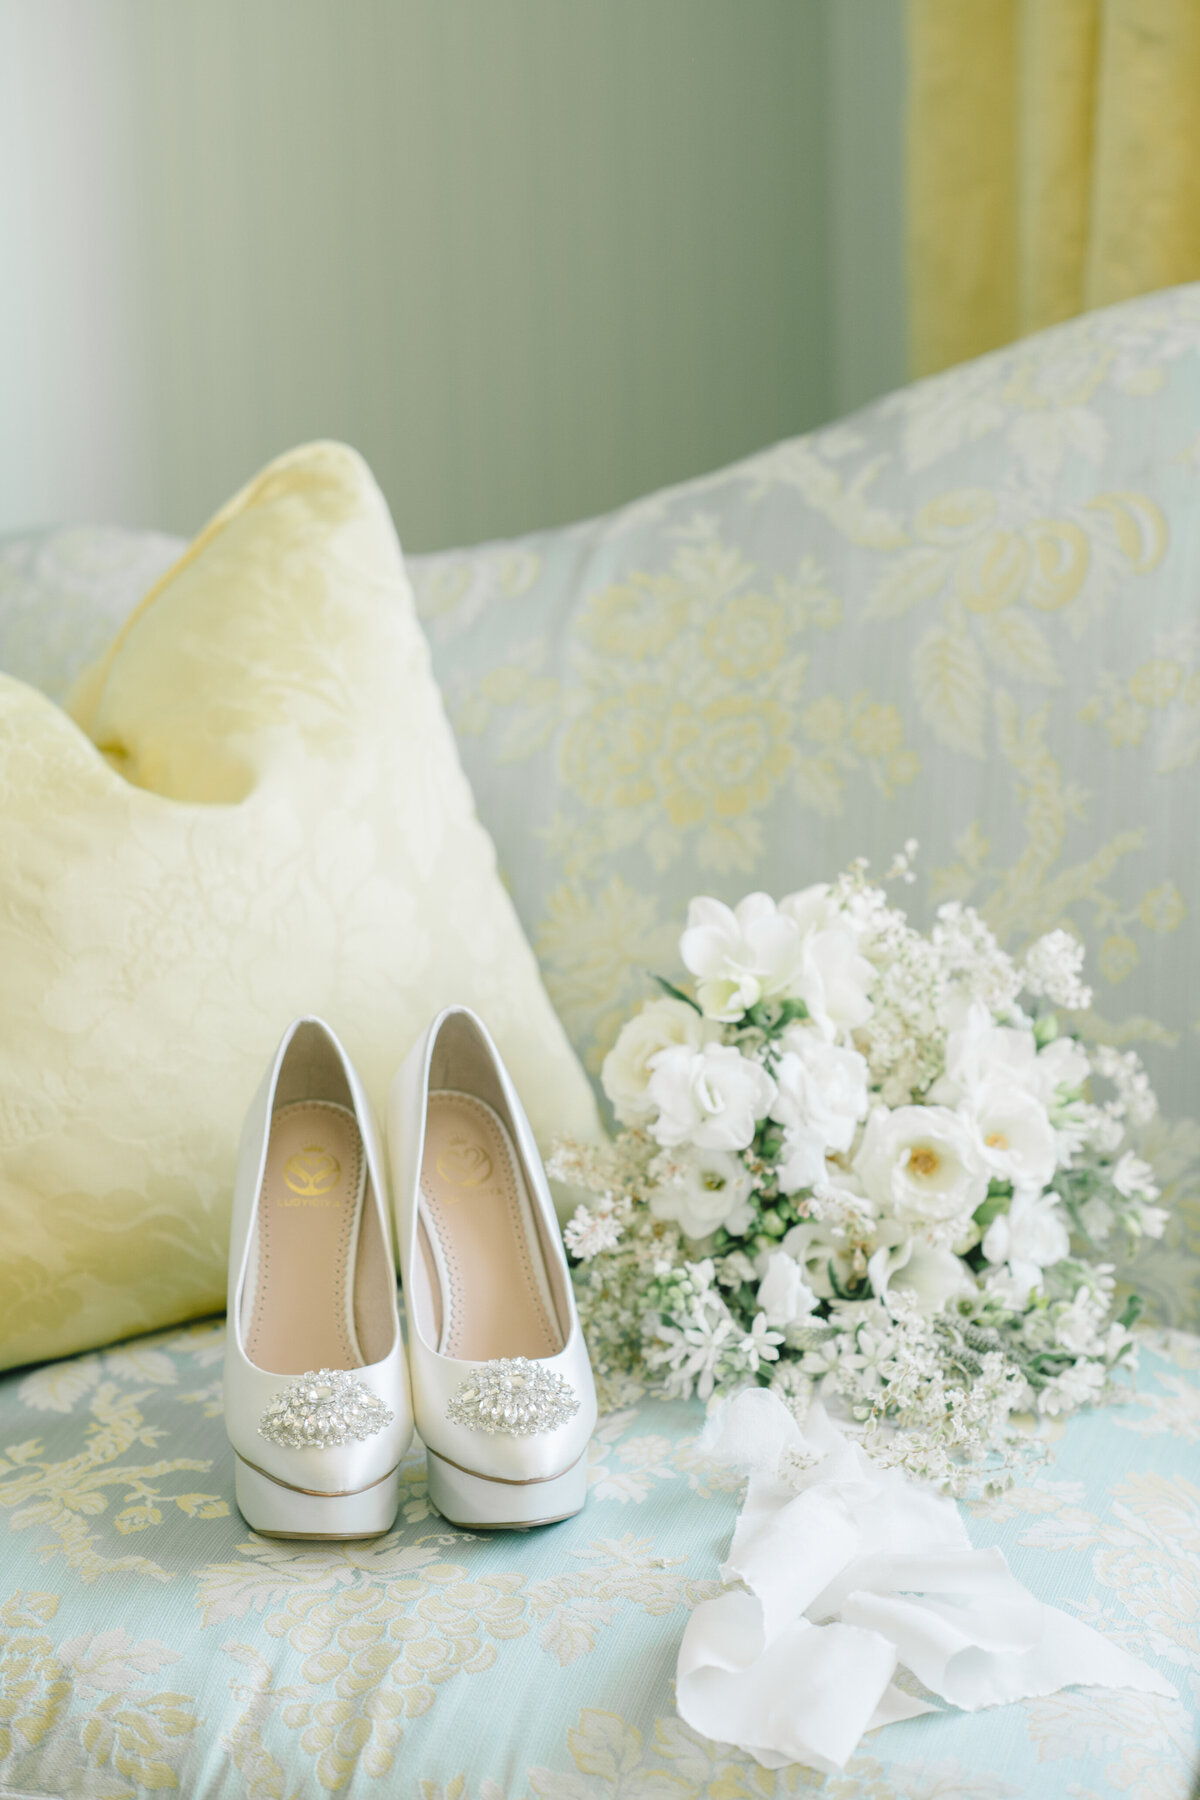 jade_kwan_wedding_0836